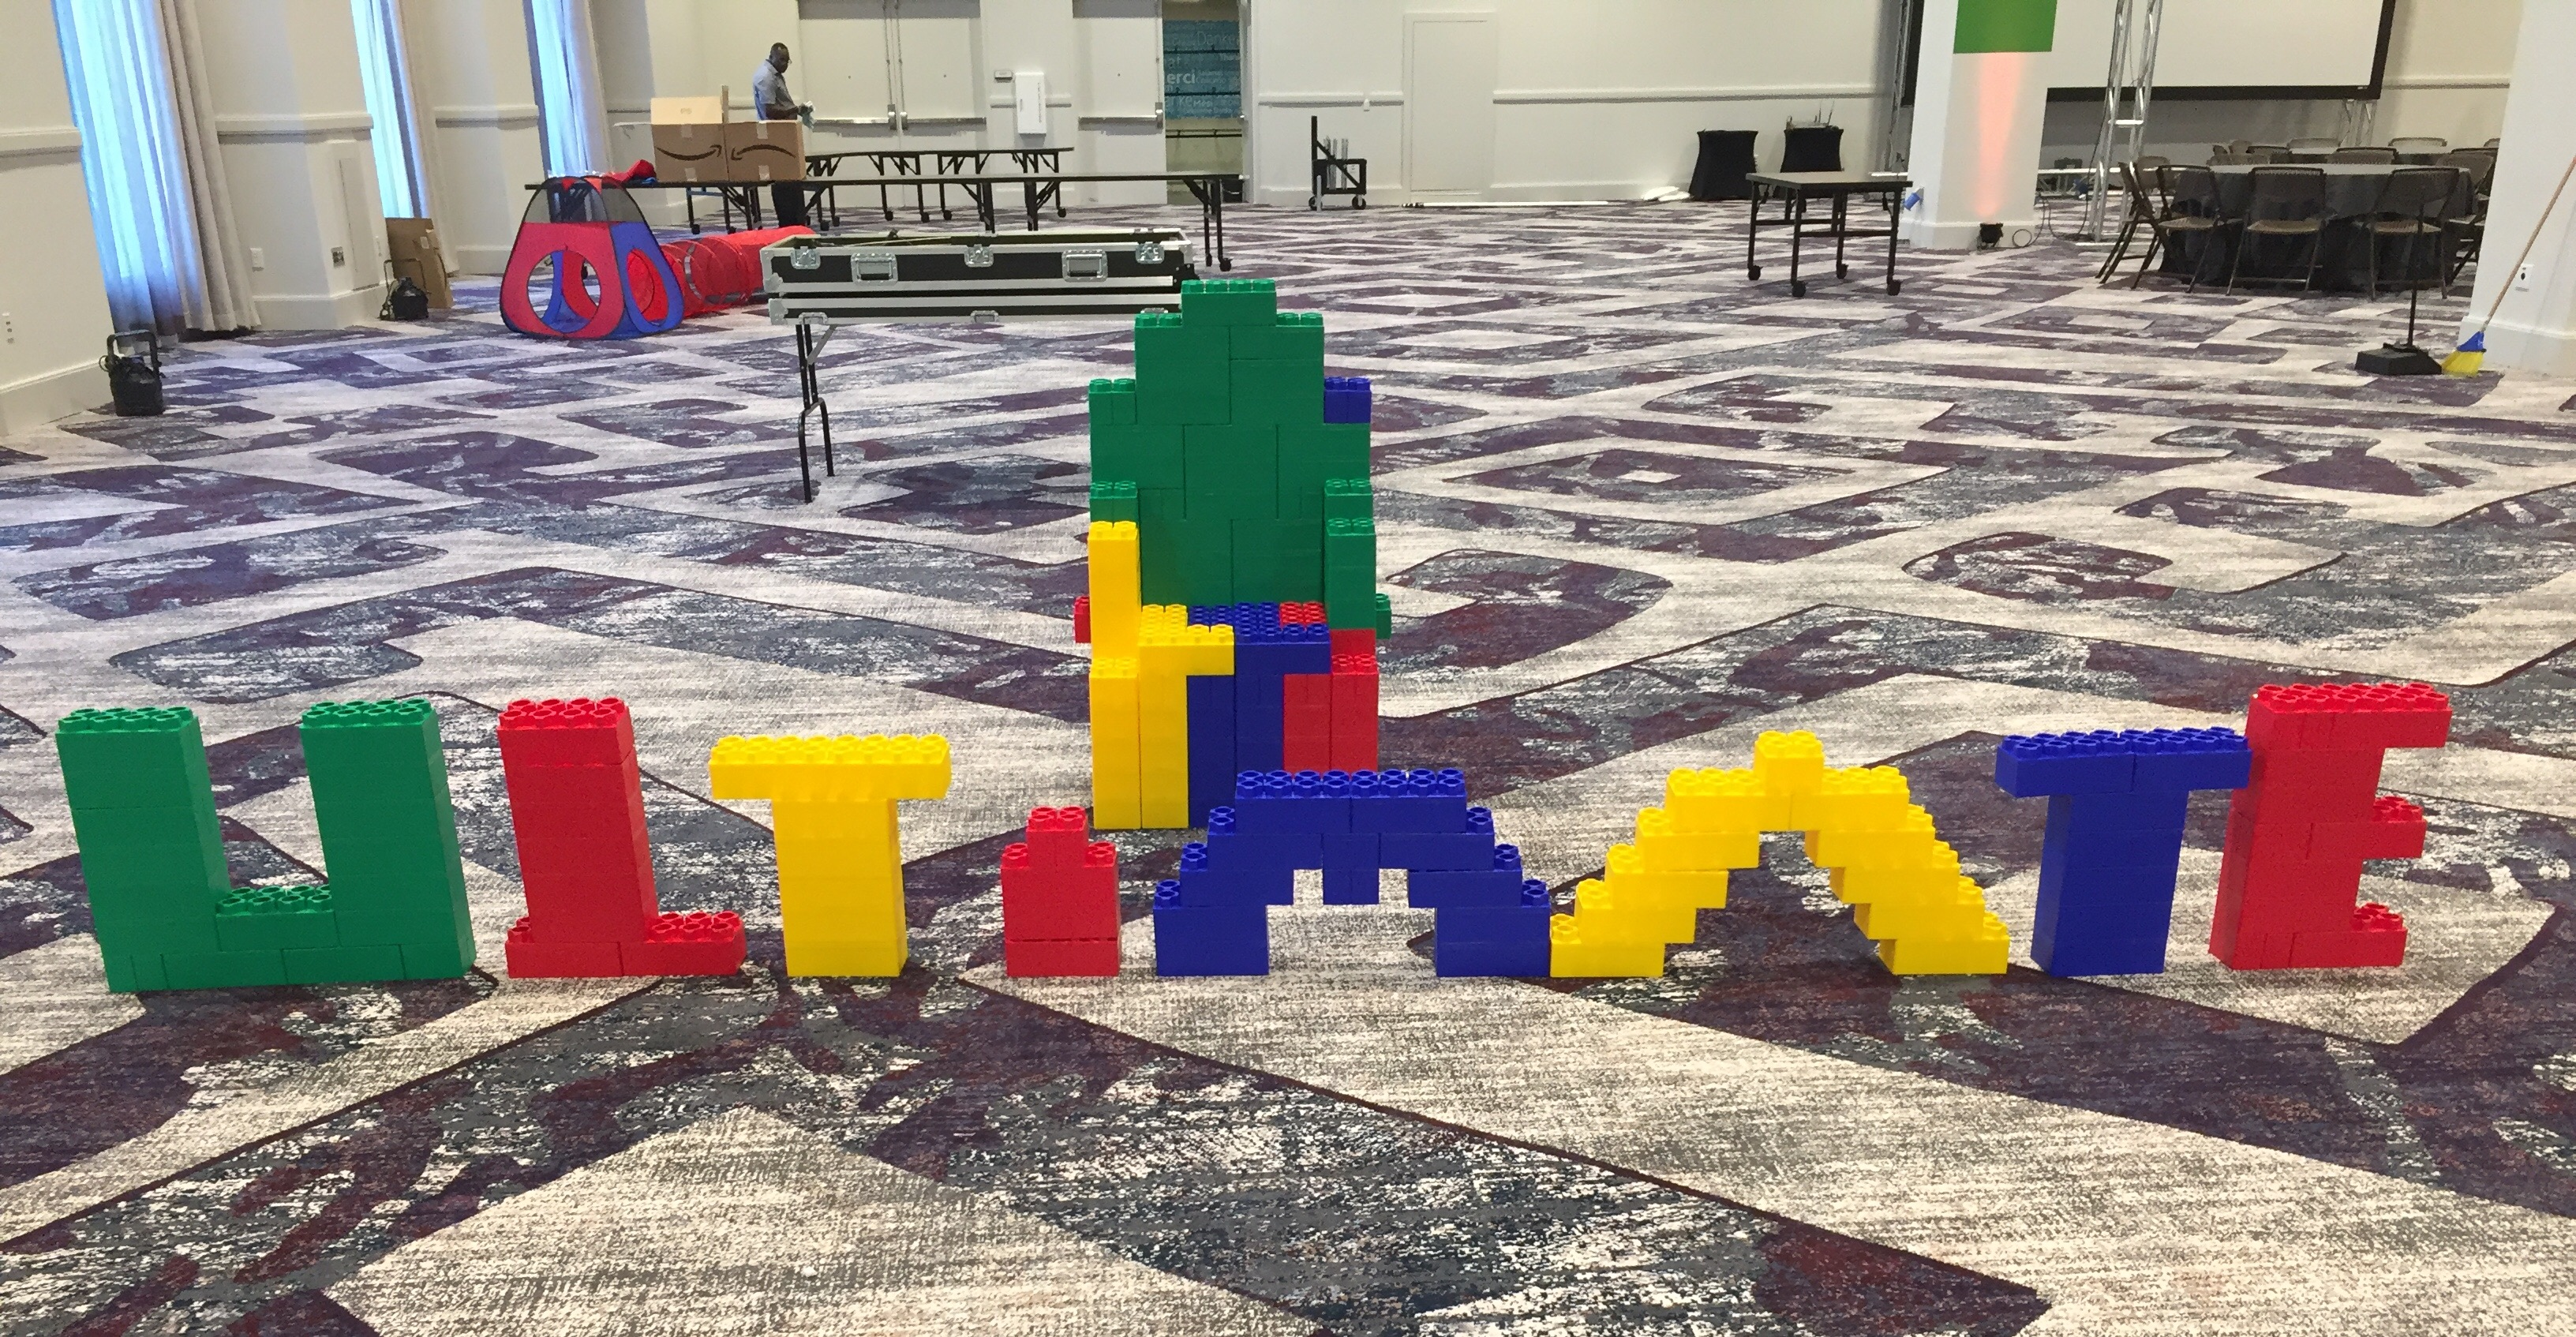 Giant Legos | Giant Building Blocks | Lego Art